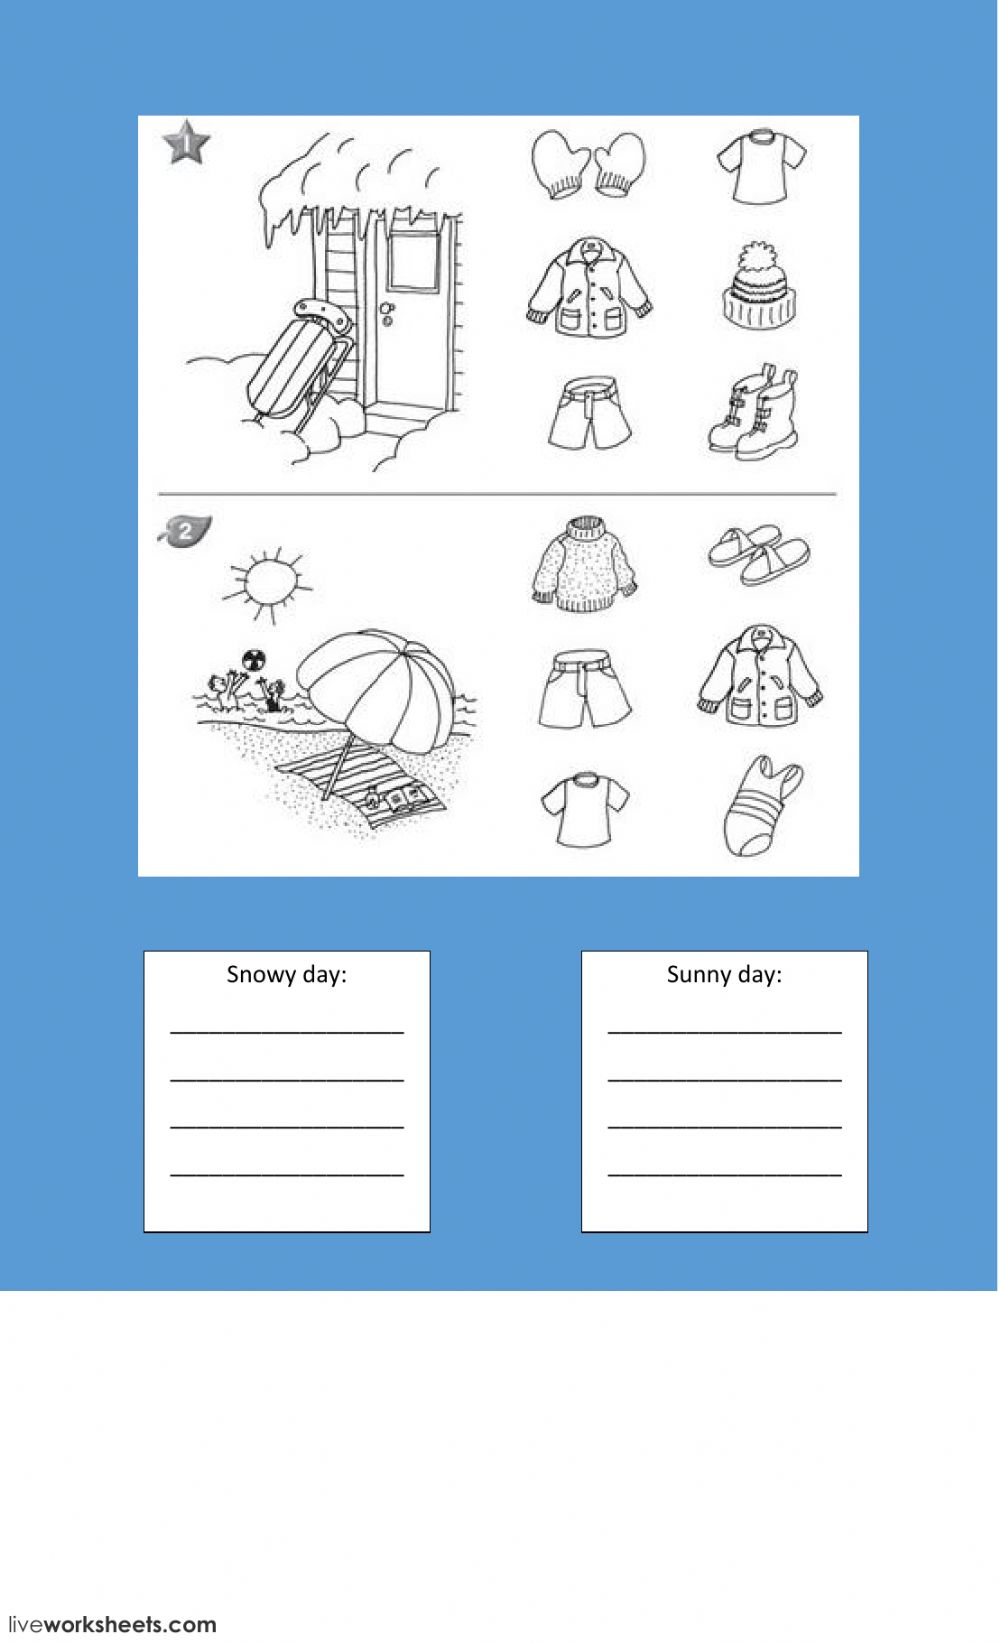 clothes and weather the clothes worksheet. Black Bedroom Furniture Sets. Home Design Ideas